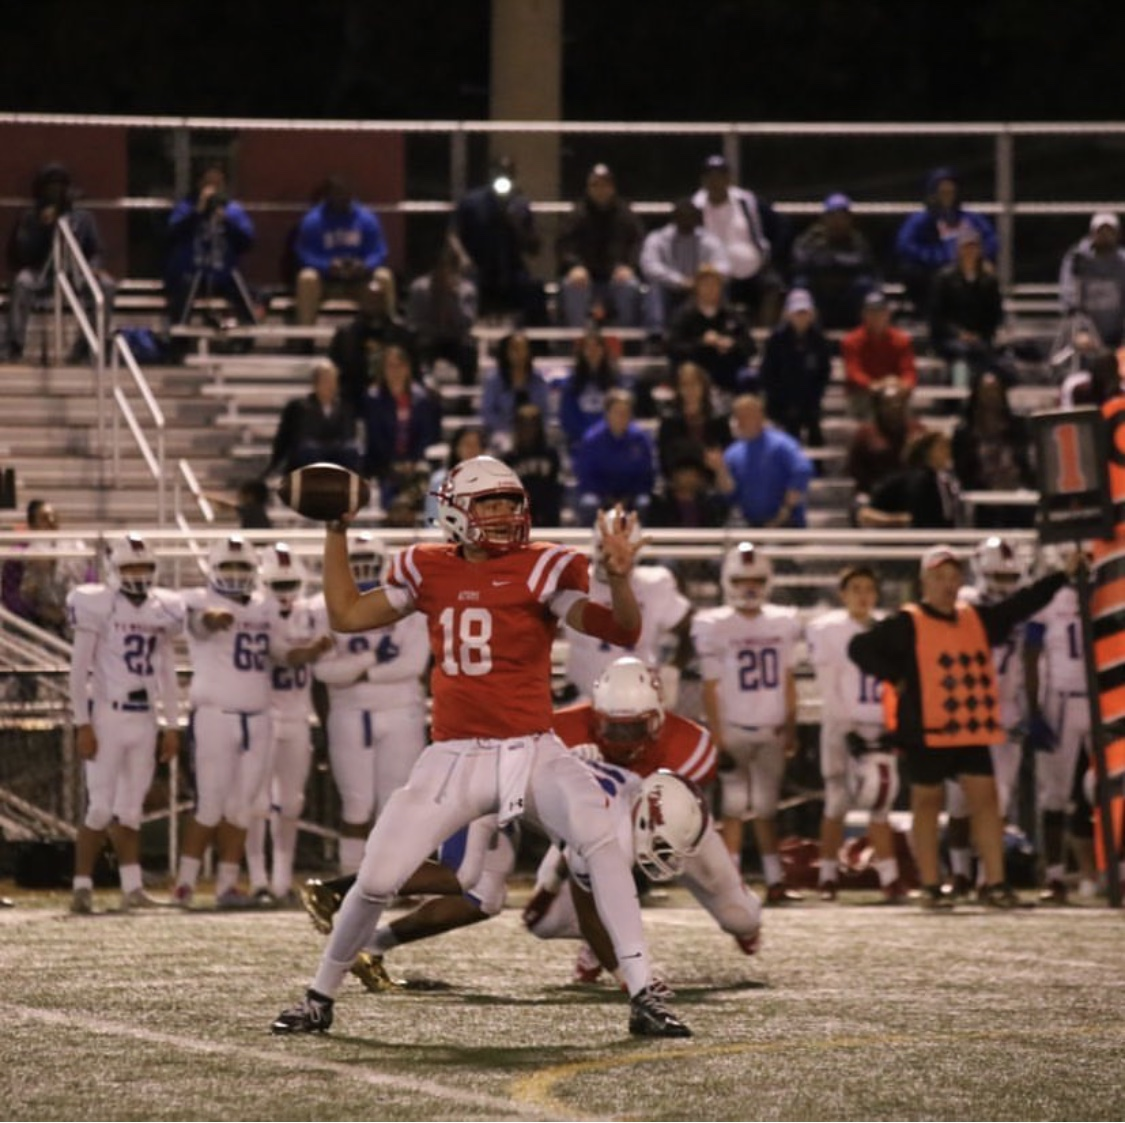 Senior starting quarterback Devin Gill drops back for a pass during a game.